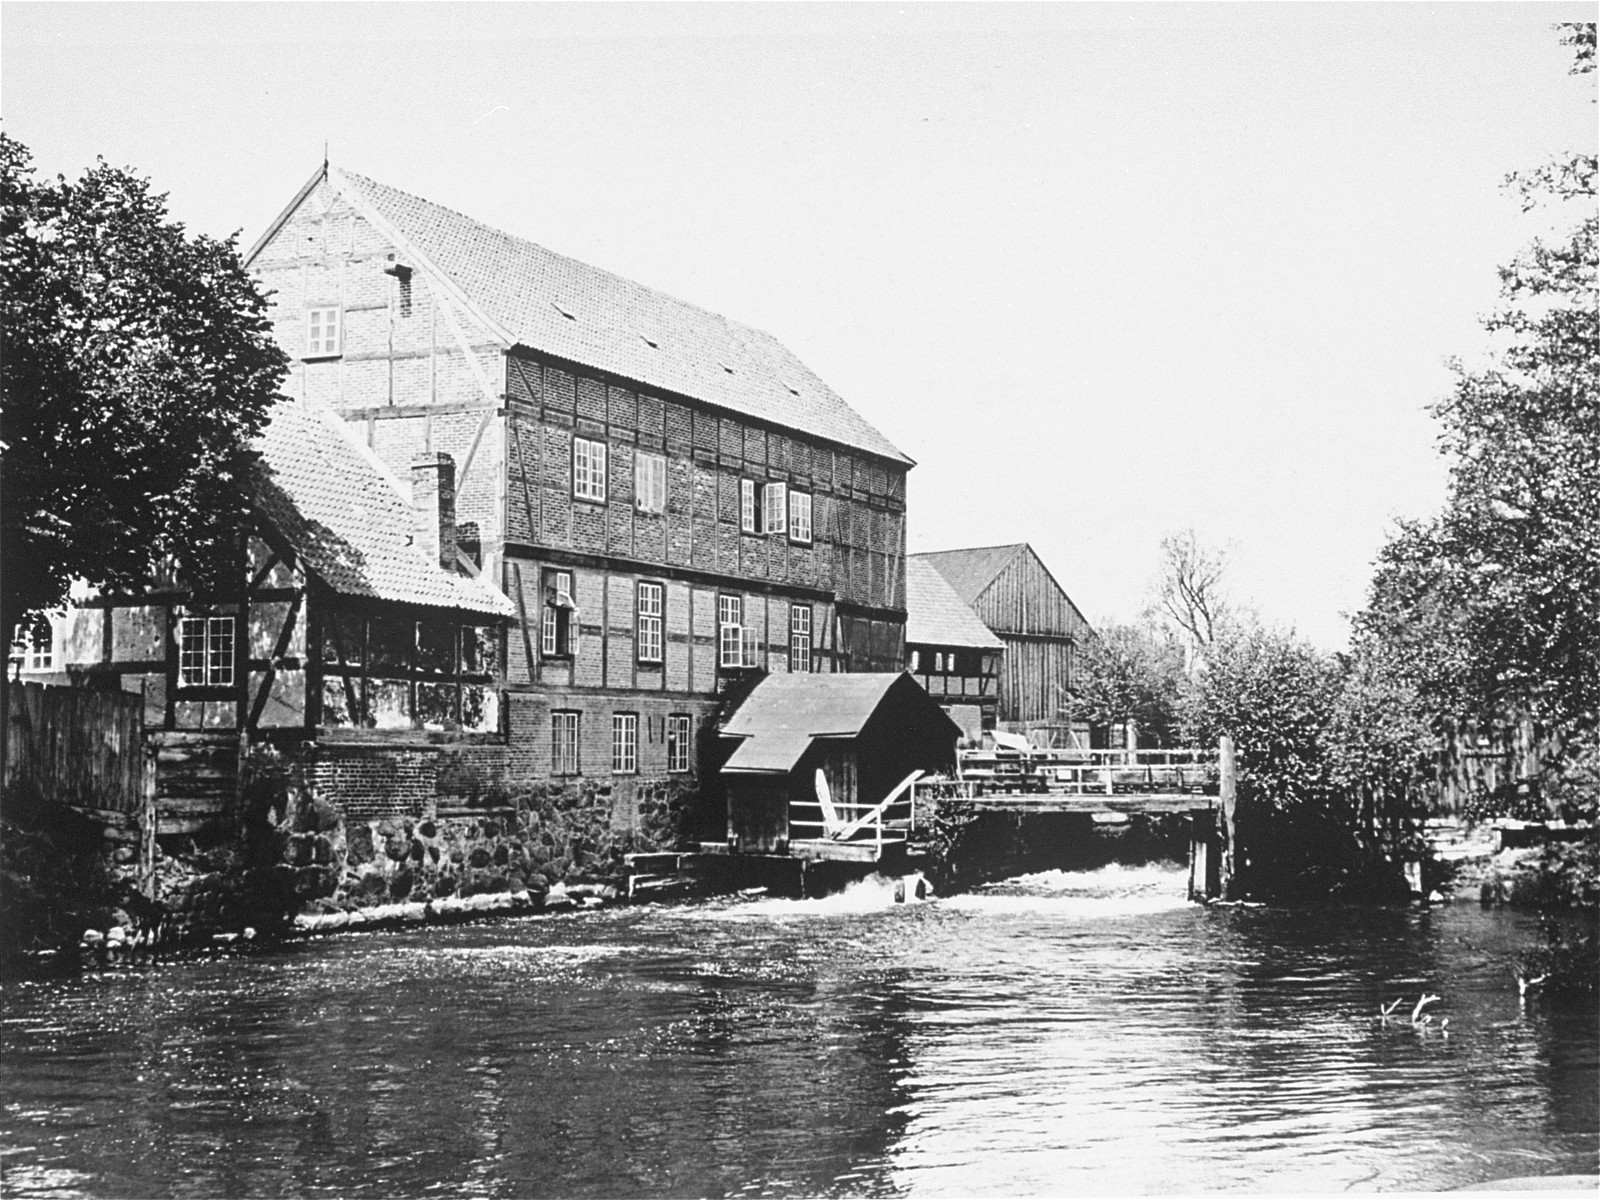 View of the Schlawer Muhlenwerke, a mill owned and operated by Hugo Gottschalk.    The mill was founded in 1872 by Benjamin Gottschalk (1834-1902).  His son, Hugo, took over the mill after his death.  The mill remained in the hands of the Gottschalk family until 1923, when it was sold to the city of Schlawe.